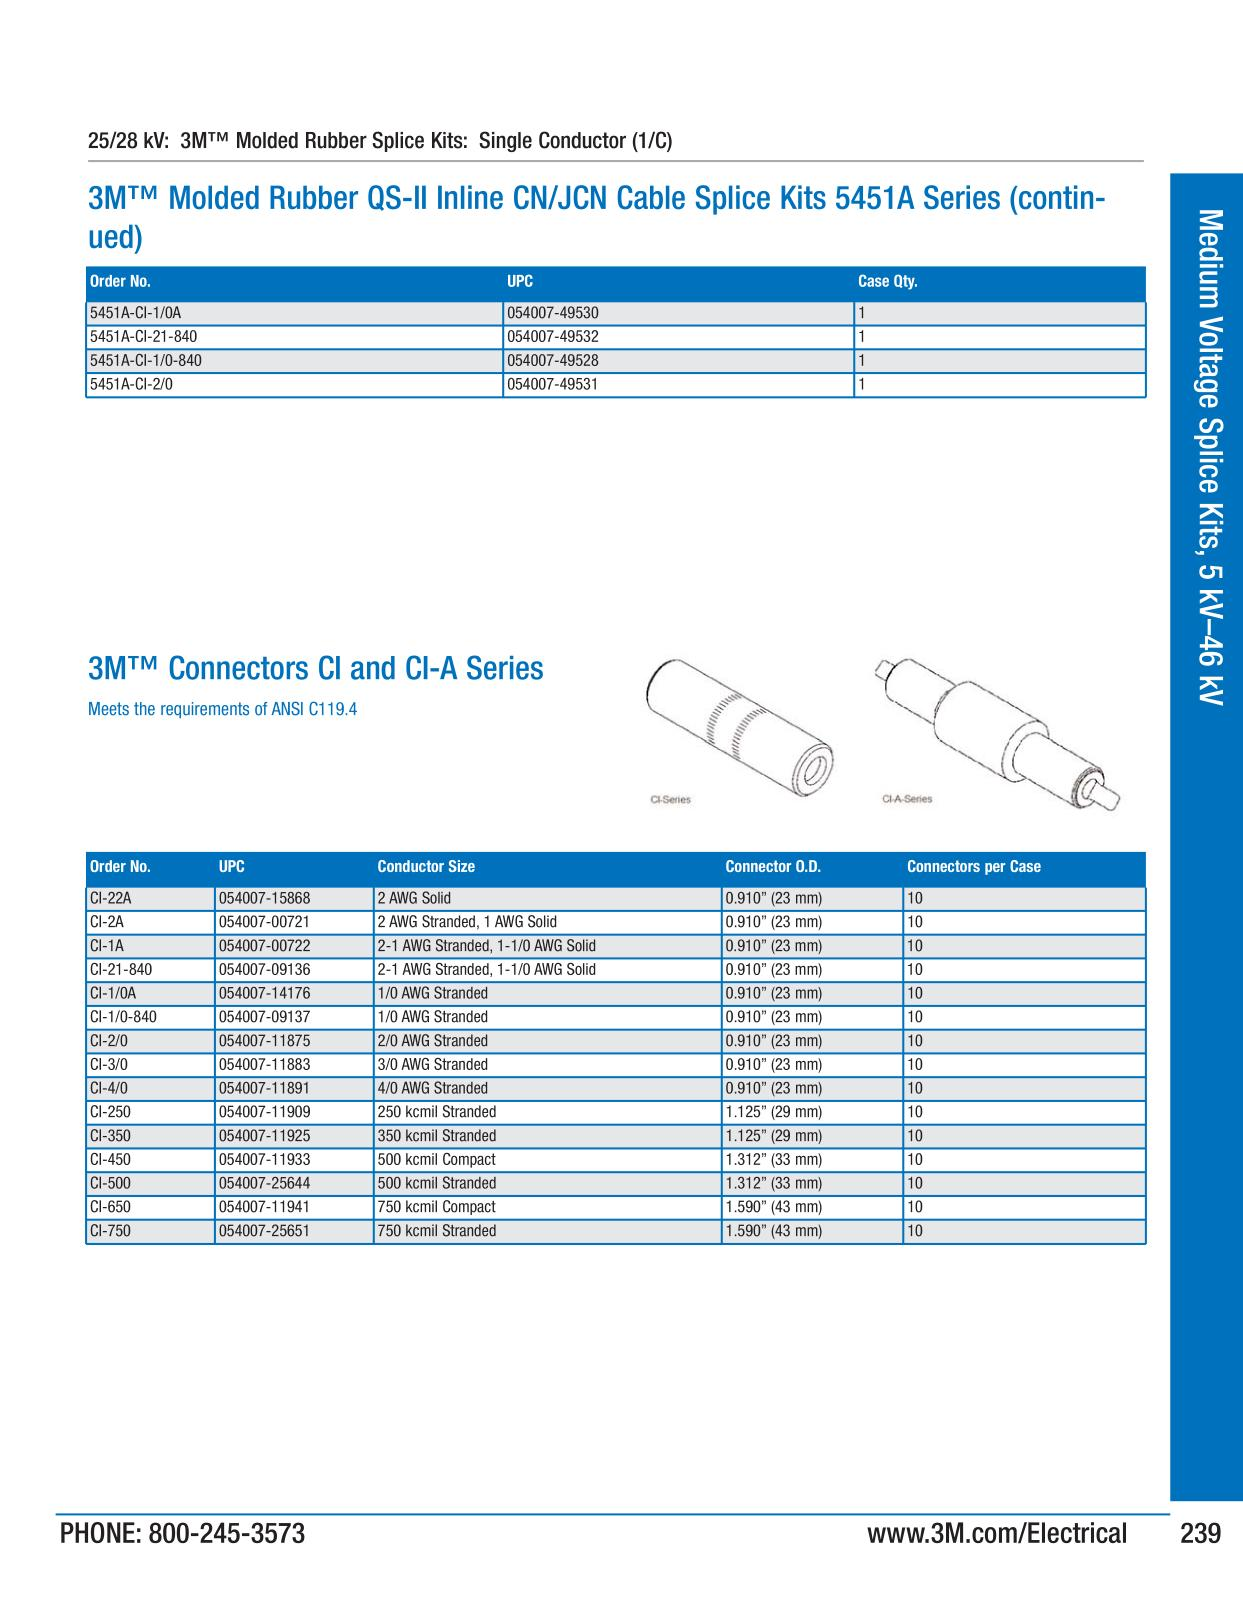 3M Electrical Products Page 240 - Medium Voltage Splice Kits, 5 kV ...